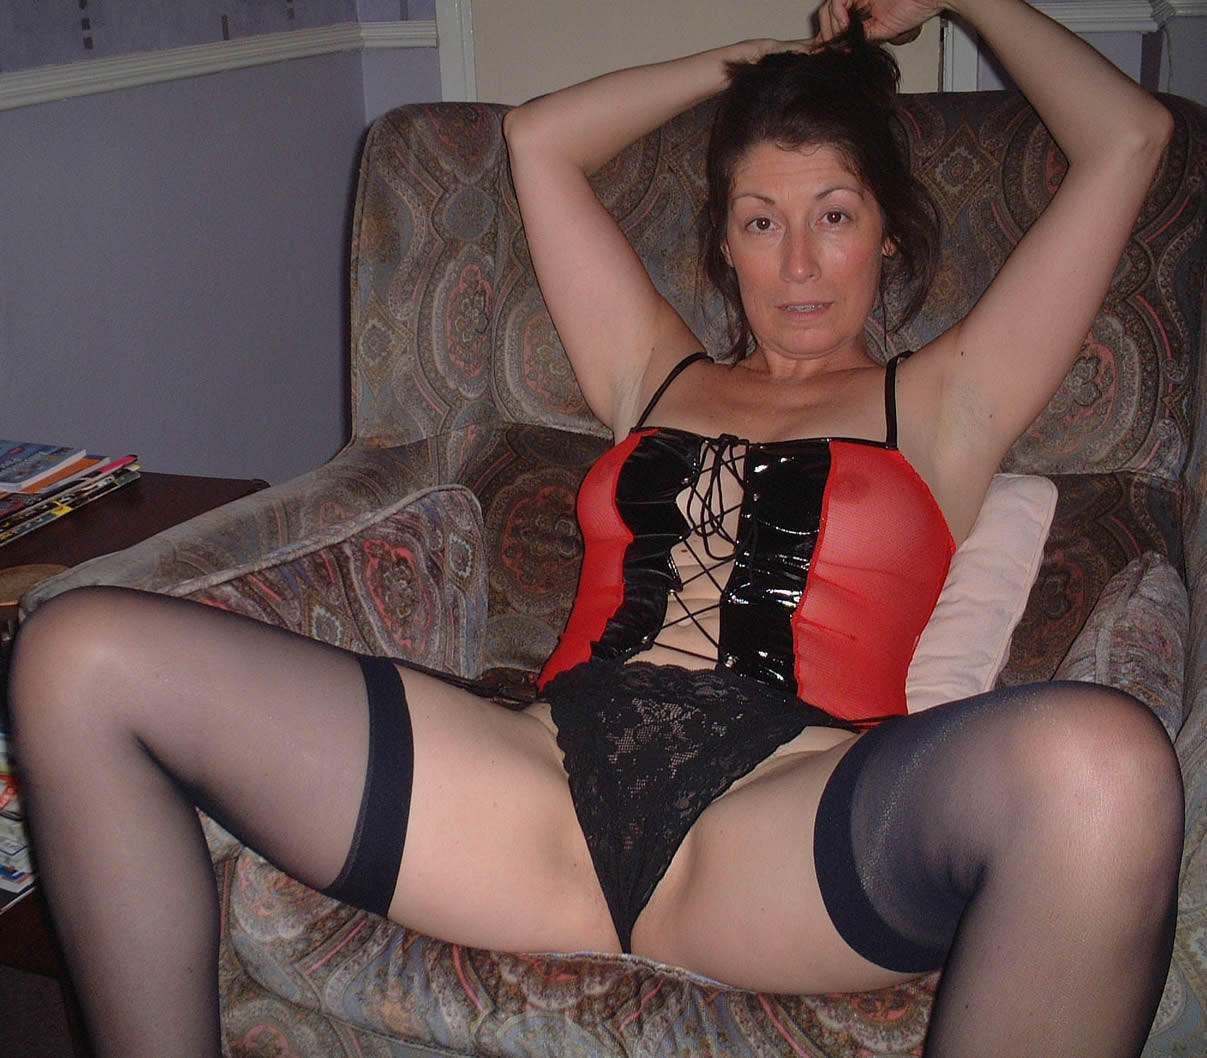 Mommies looking fucking incredible in fishnets